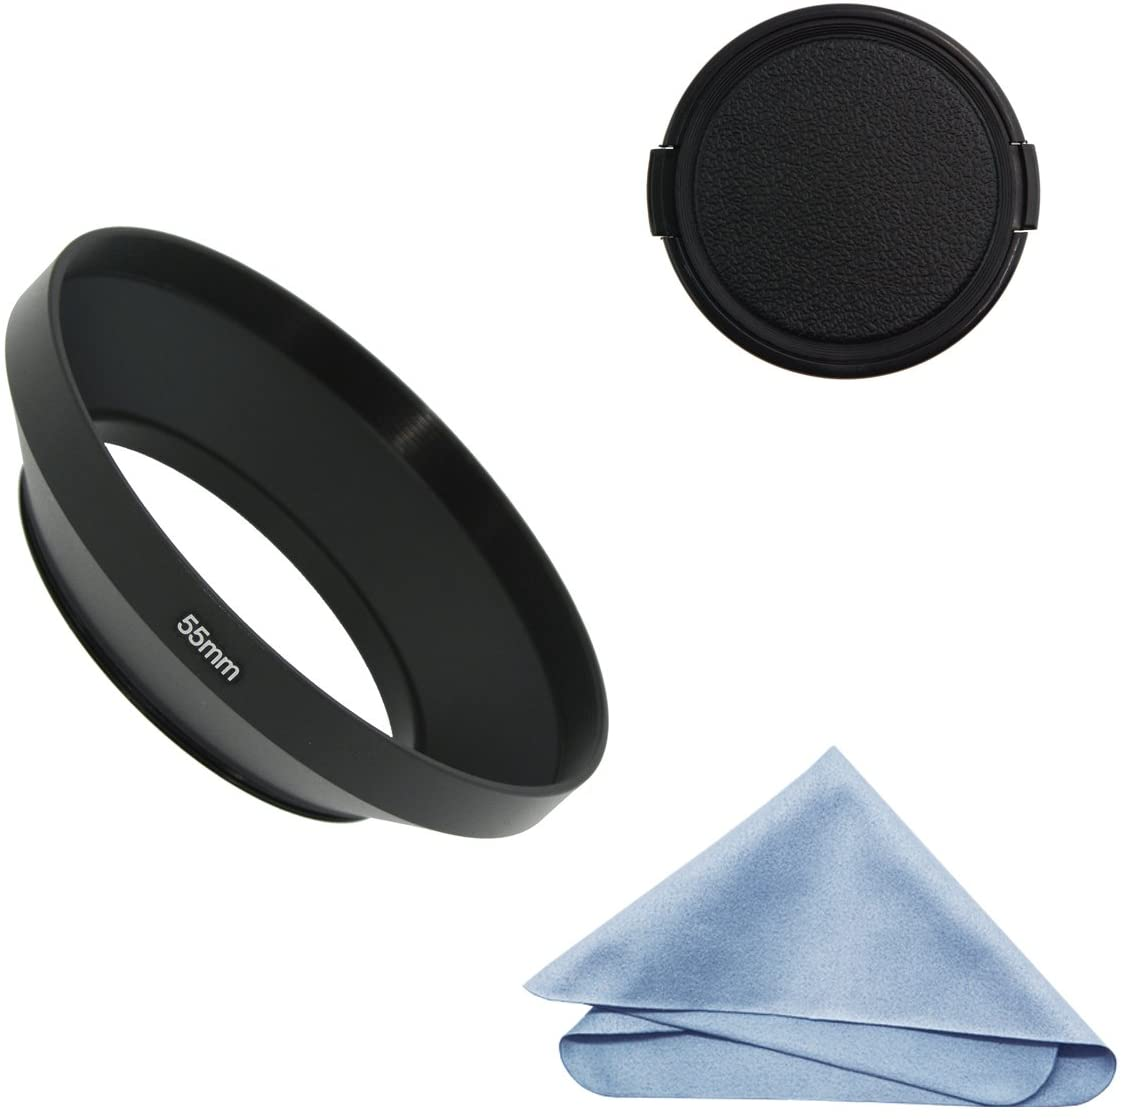 SIOTI Camera Wide Angle Metal Lens Hood with Cleaning Cloth and Lens Cap Compatible with Leica/Fuji/Nikon/Canon/Samsung Standard Thread Lens(55mm)